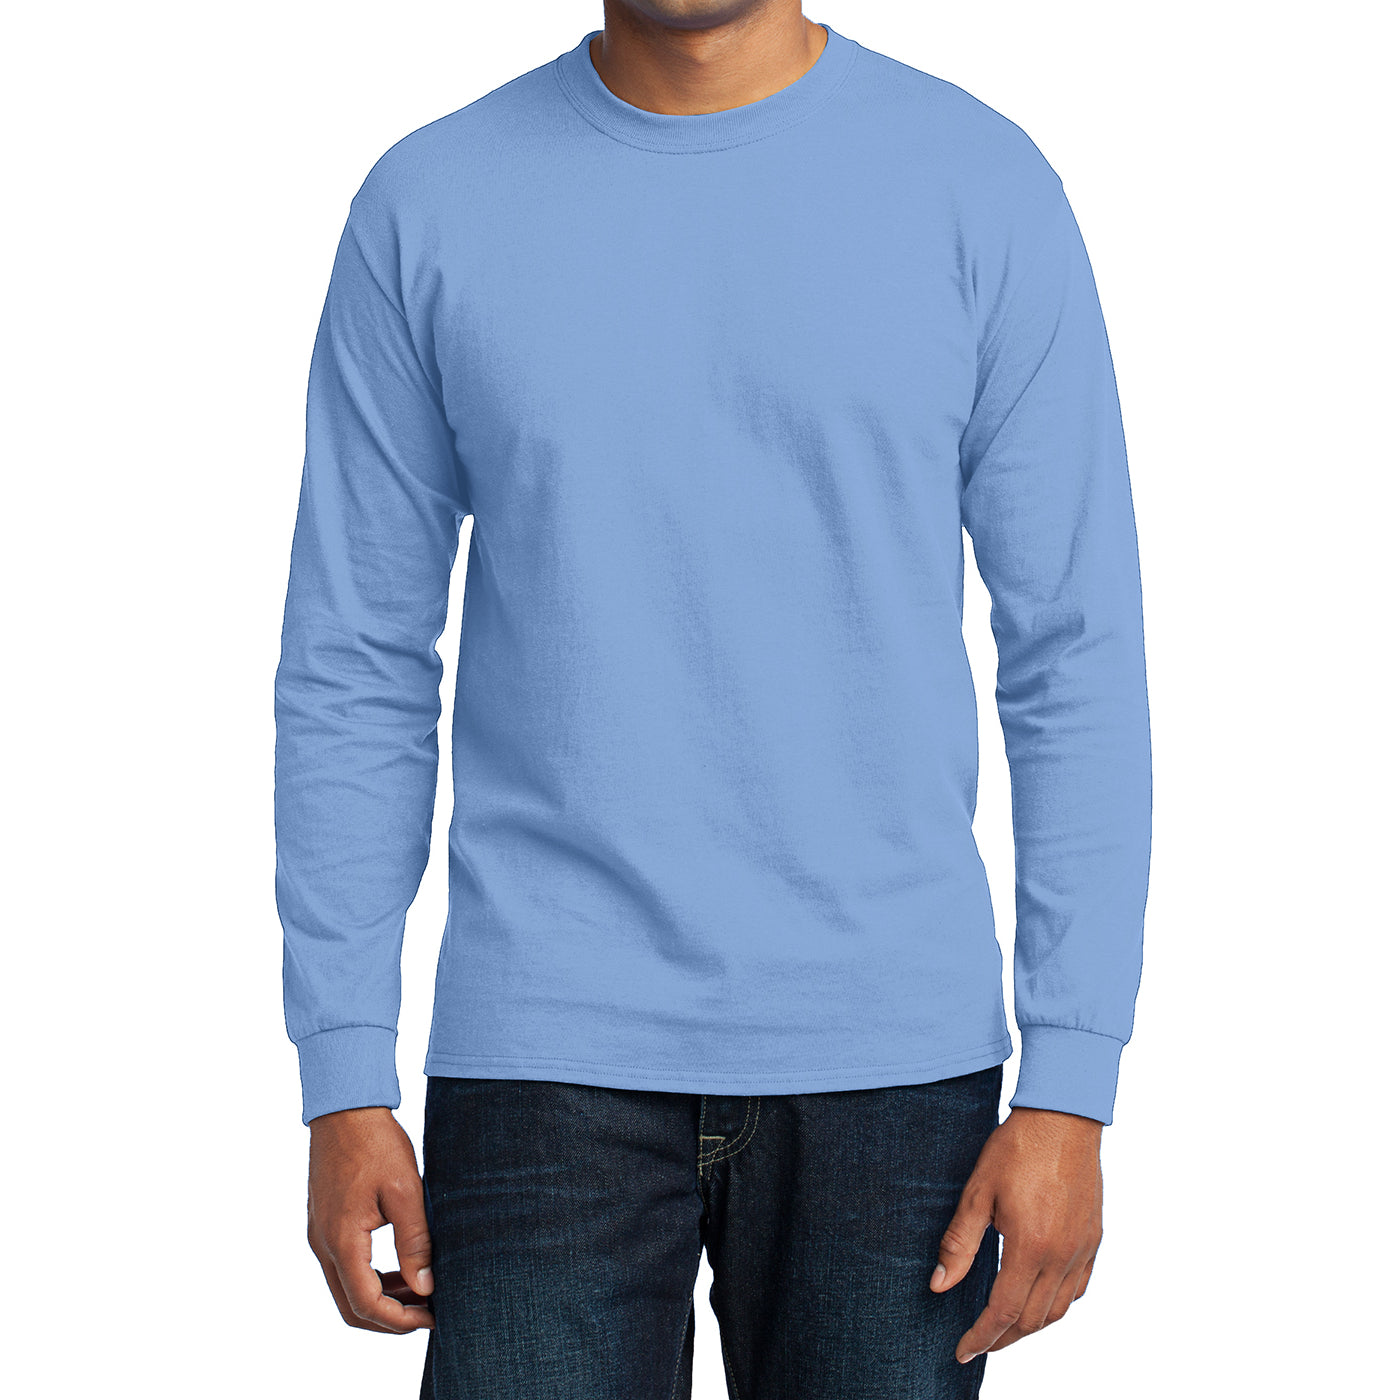 Men's Long Sleeve Core Blend Tee - Light Blue – Front